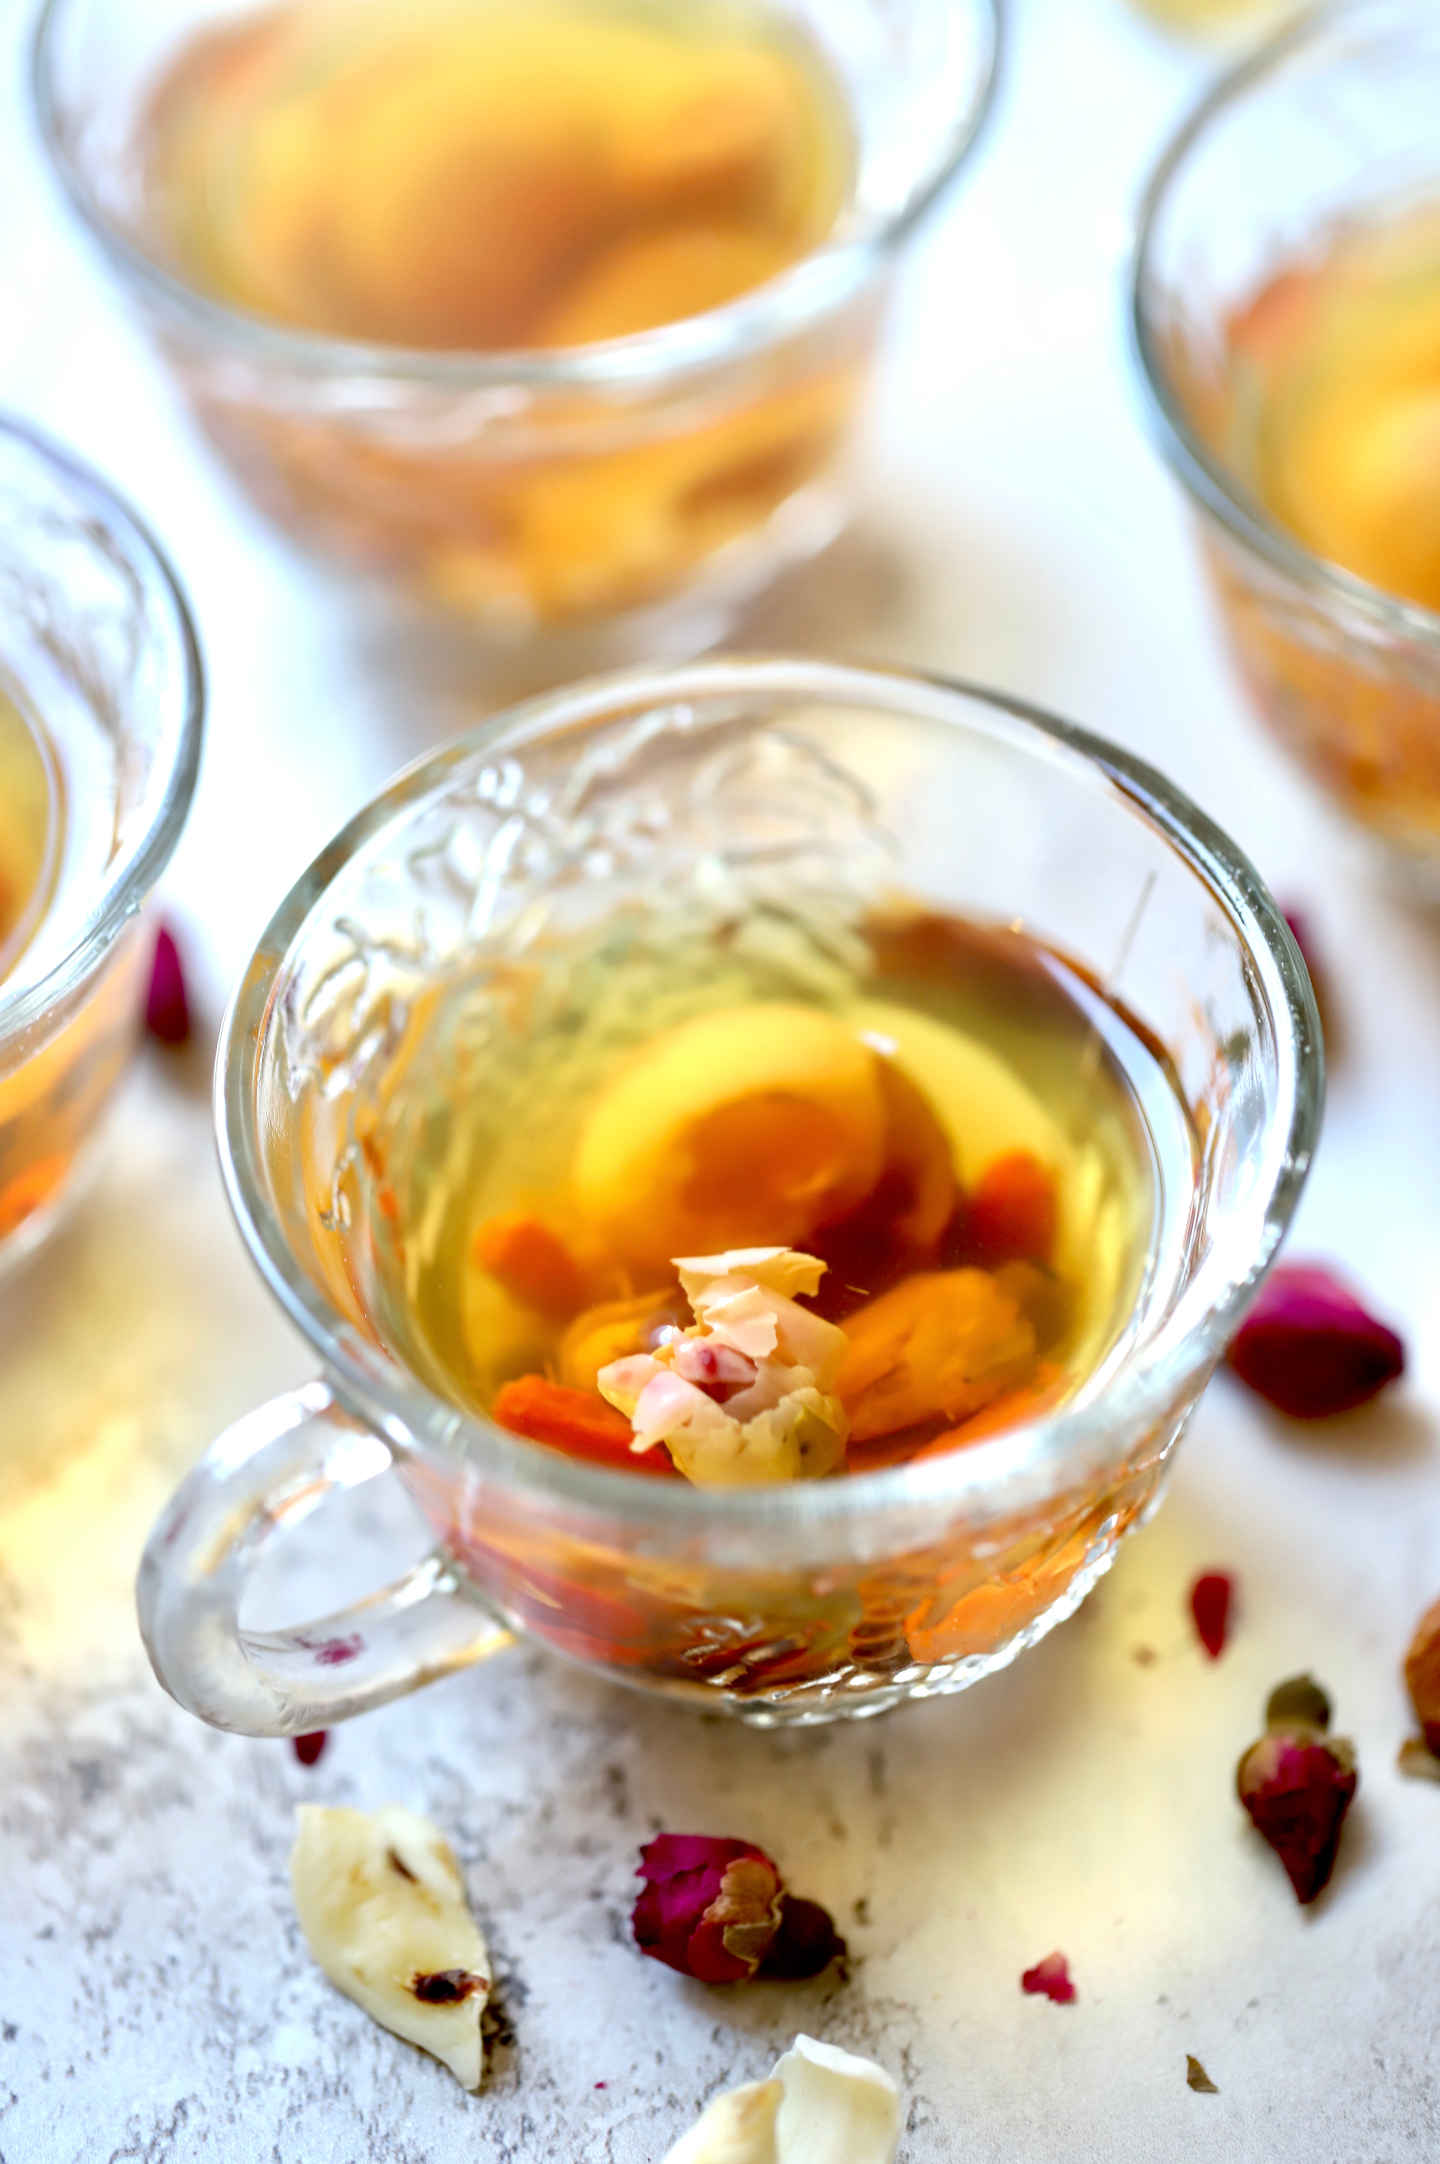 herbal tea containing rosebuds supports women's health, reproductive system and beautiful skin